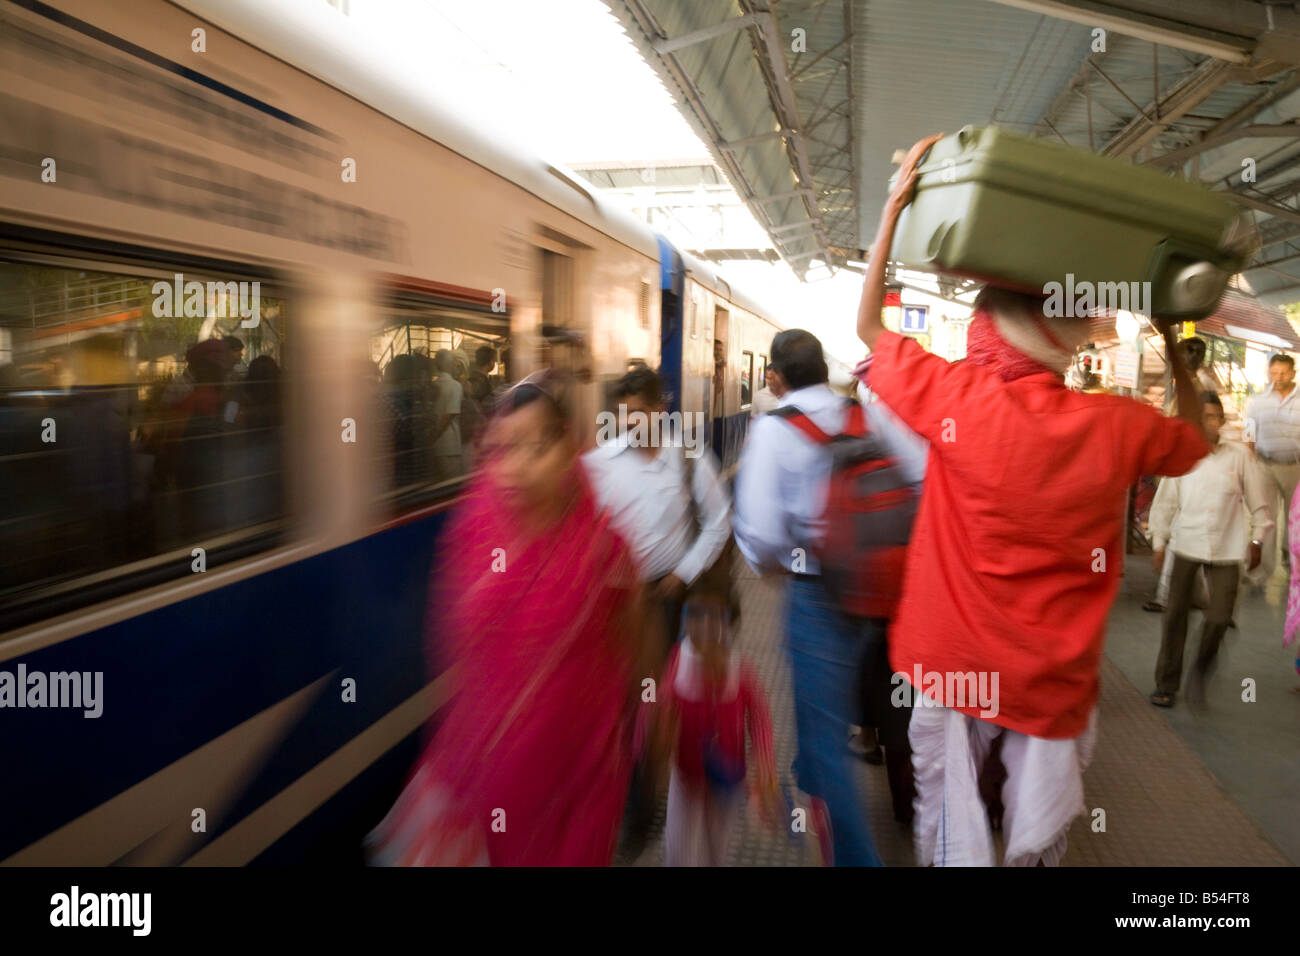 a-porter-carries-bags-as-the-train-comes-into-the-station-india-sawai-B54FT8.jpg